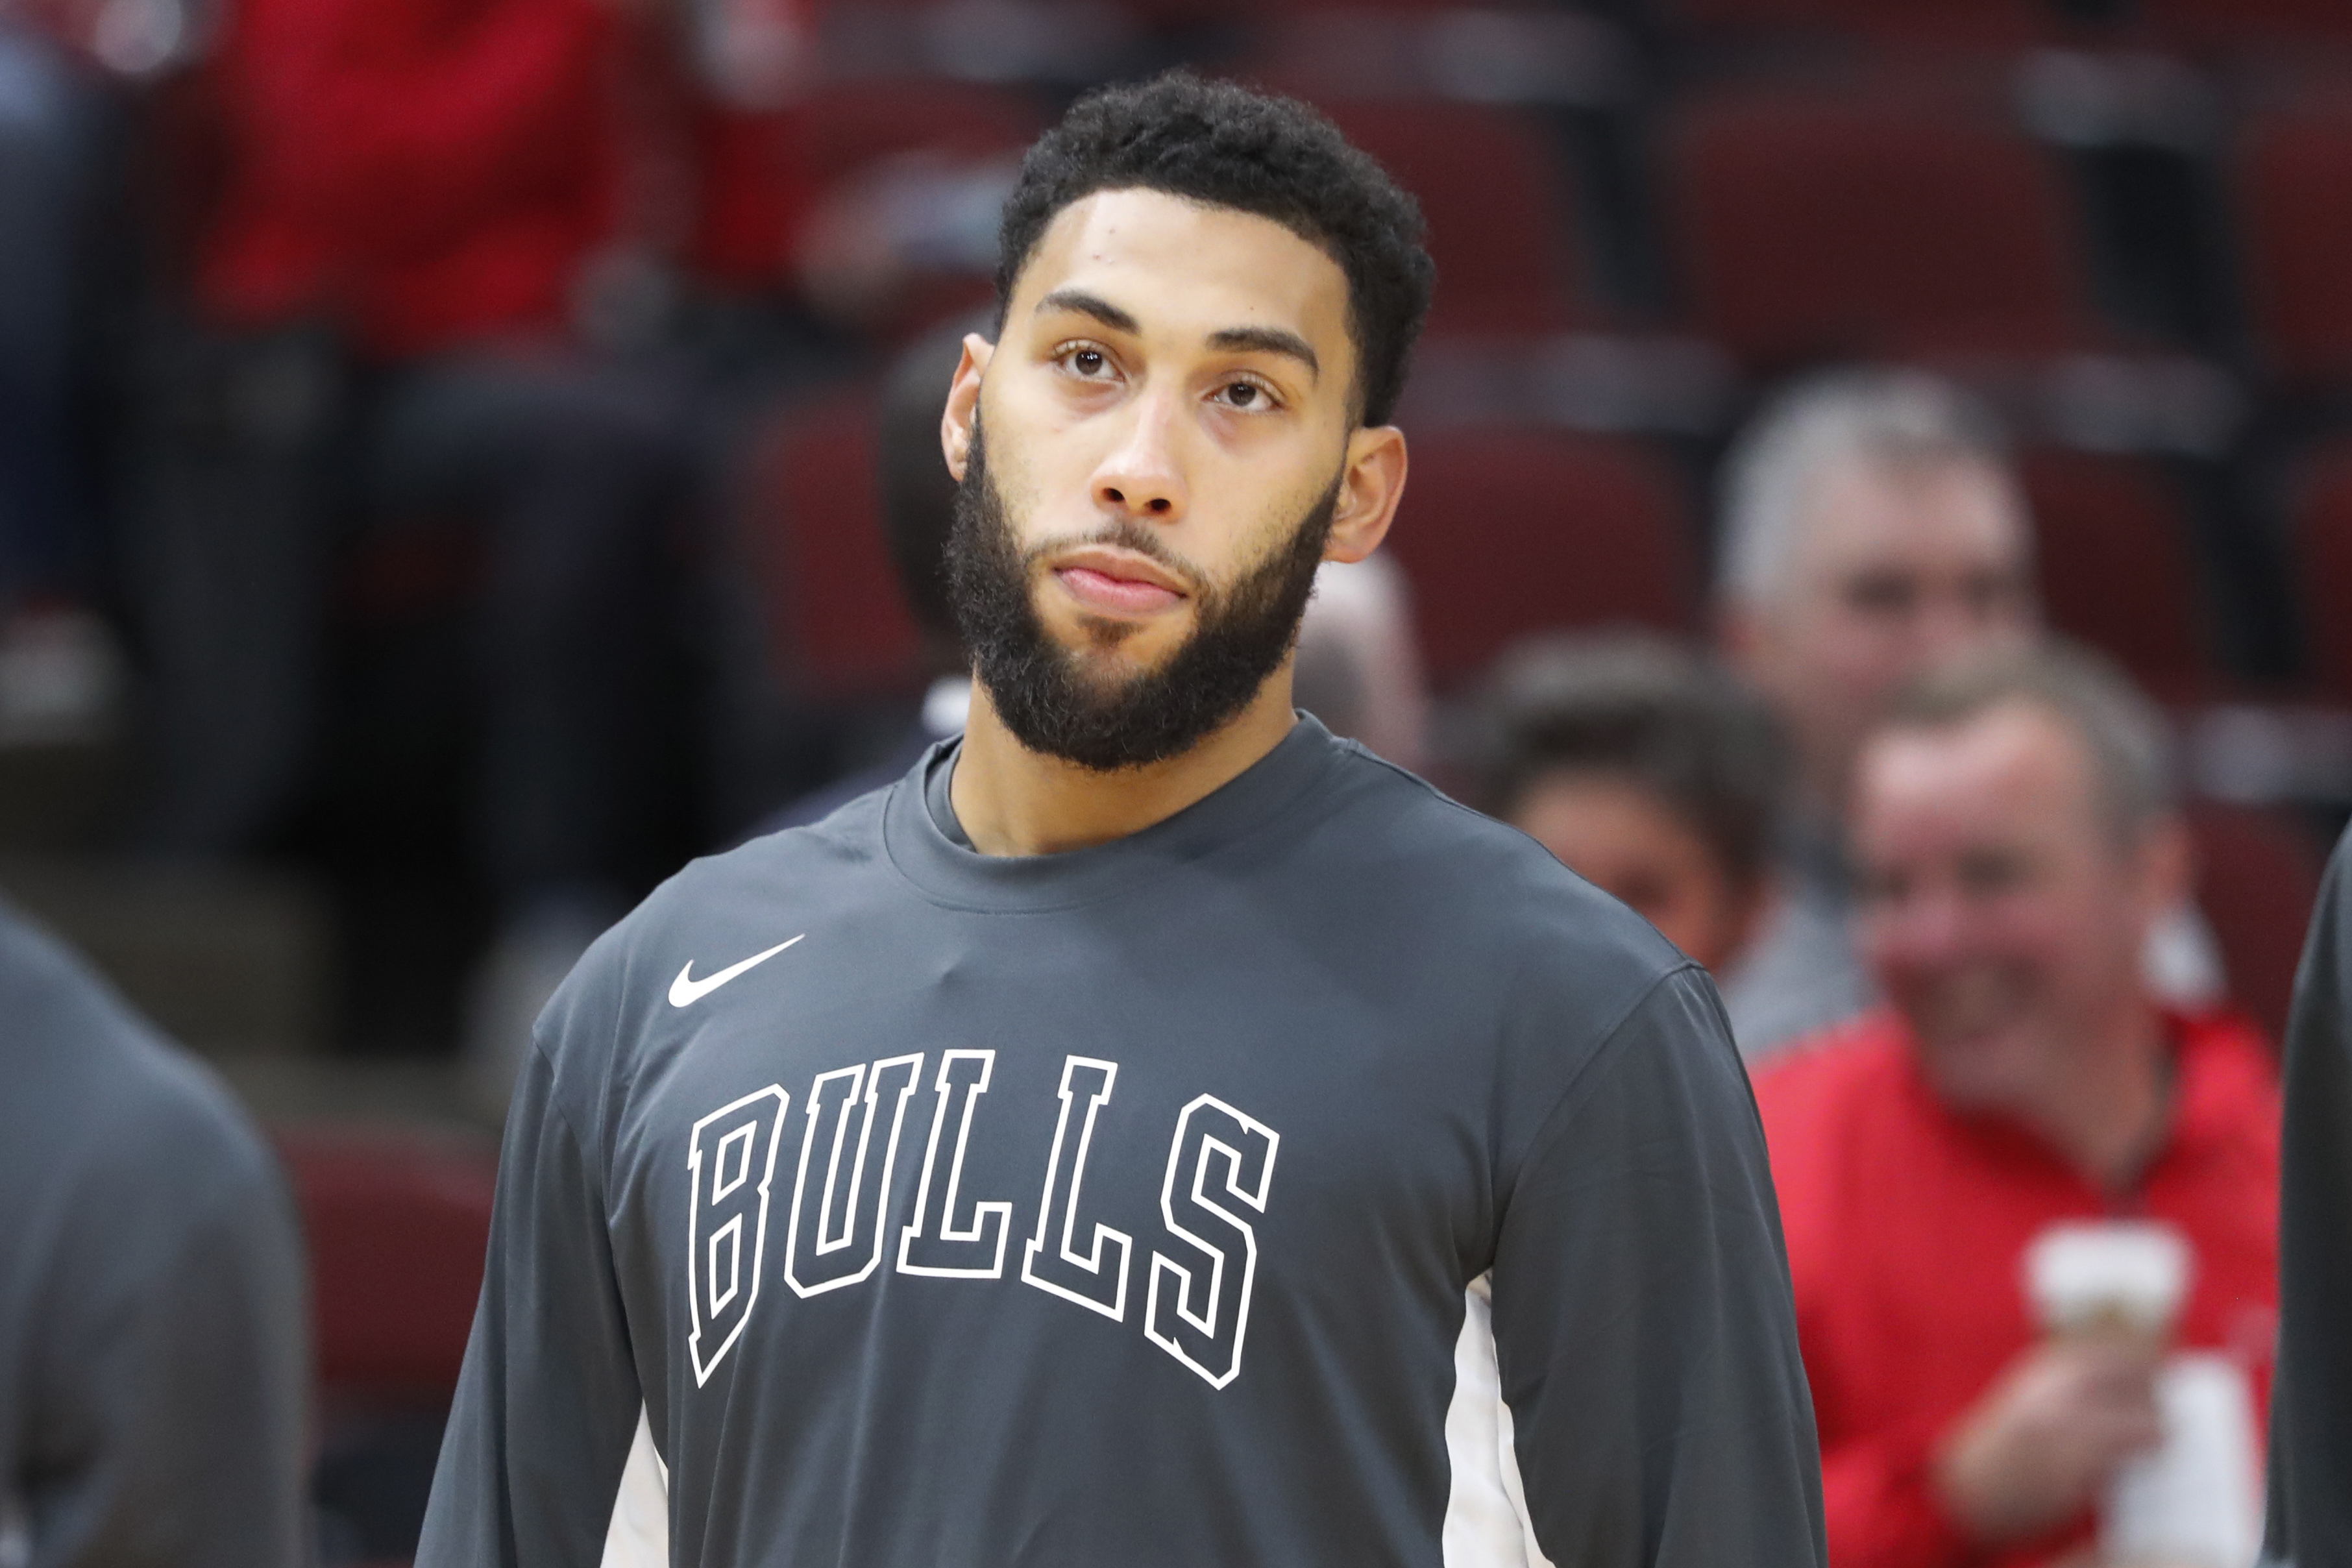 """''I'm definitely not happy about it,'' Bulls swingman Denzel Valentine said of not playing. ''I'm a competitor. I want to play, I want to be productive, I want to help the team win. But that's out of my control."""""""